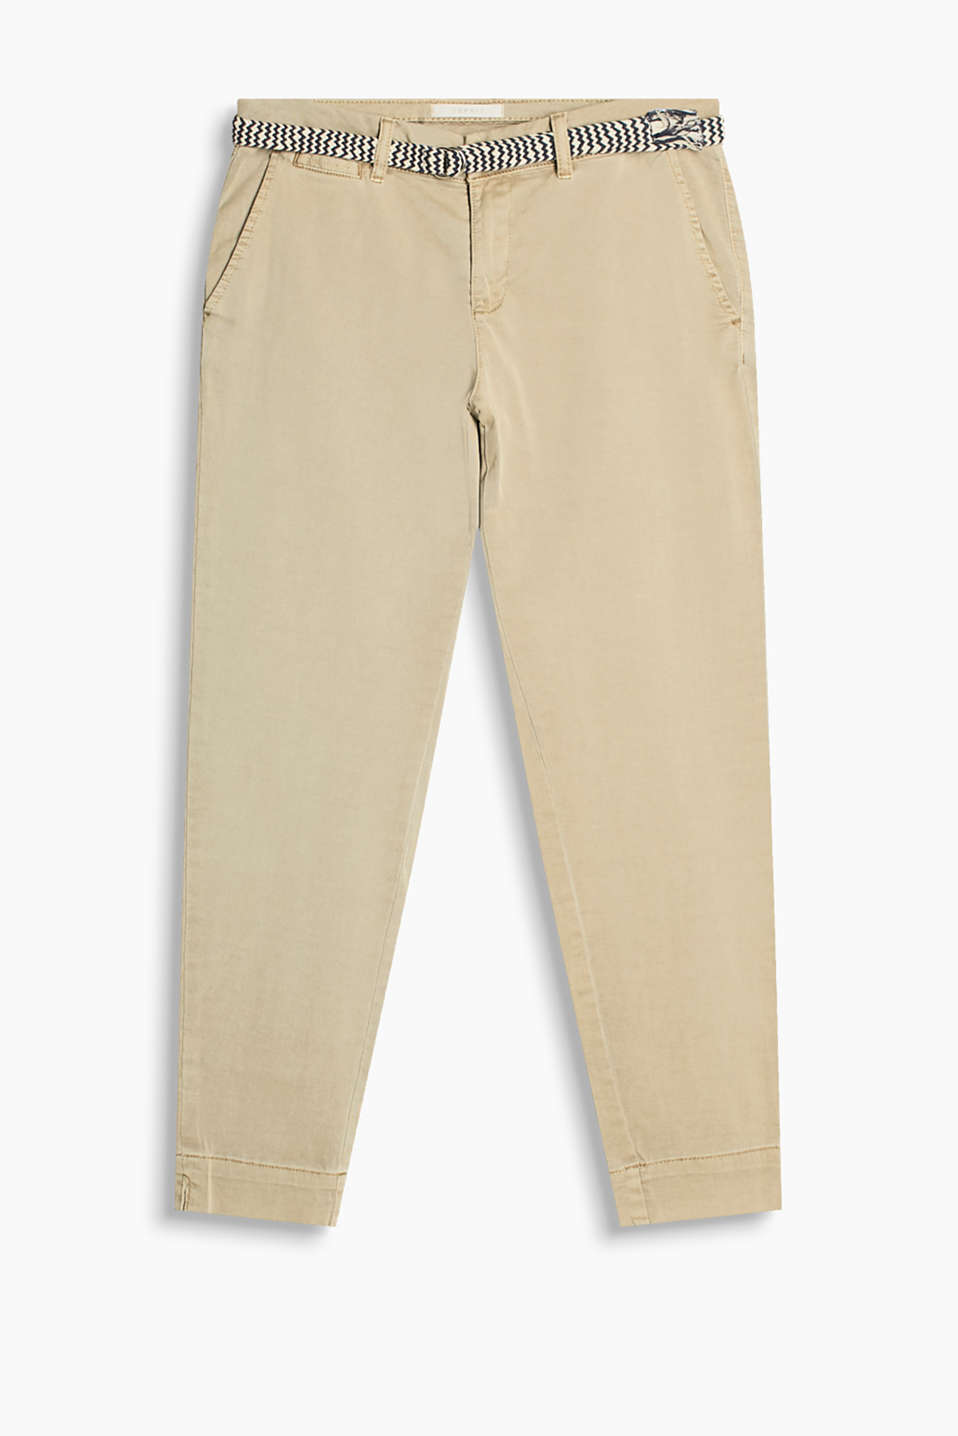 So smart/casual: fashionably cropped, cotton chinos with added elastane for stretchiness and comfort